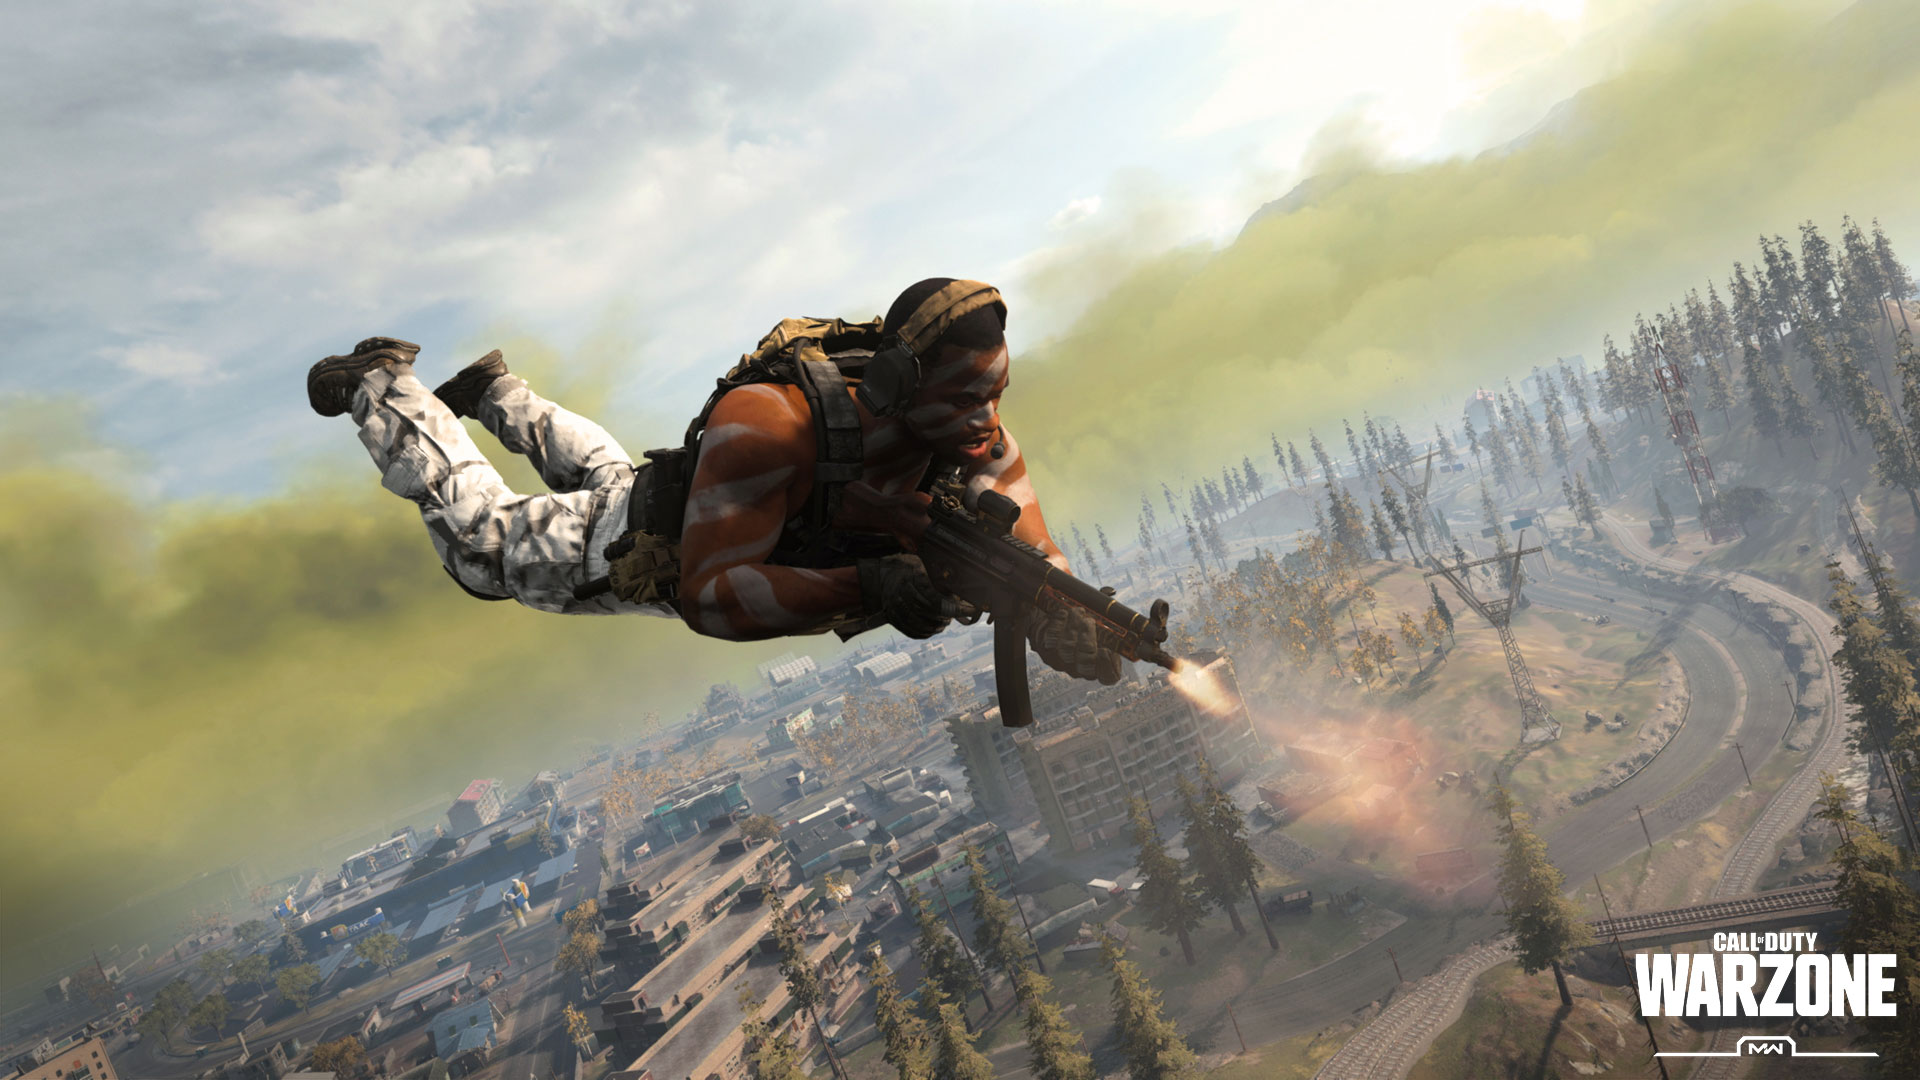 Call of duty character shooting while skydiving